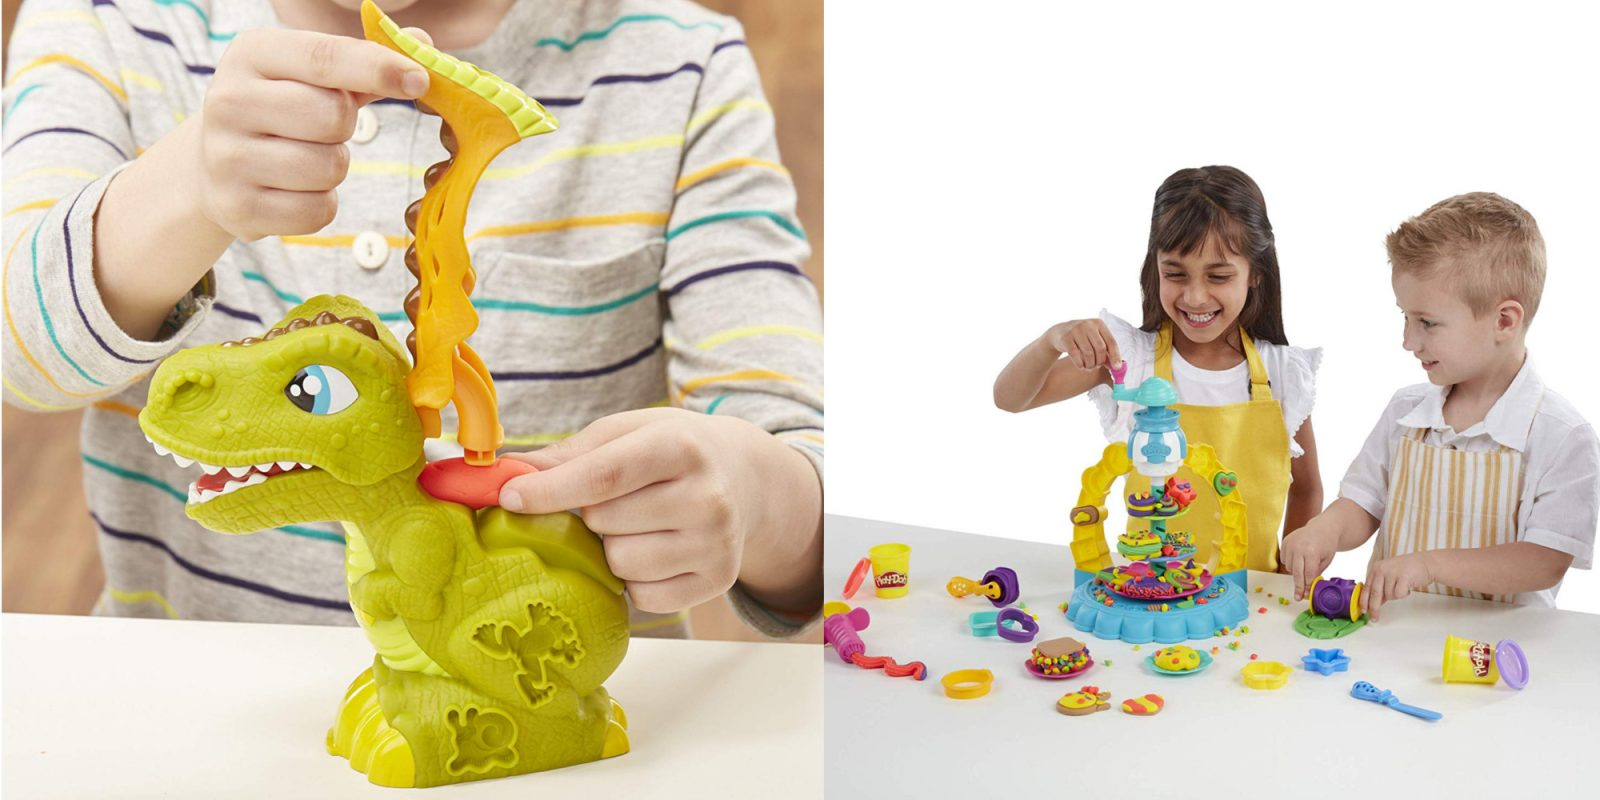 Check out these Play-Doh deals from $4.50: Rex, Fun Factory, and more